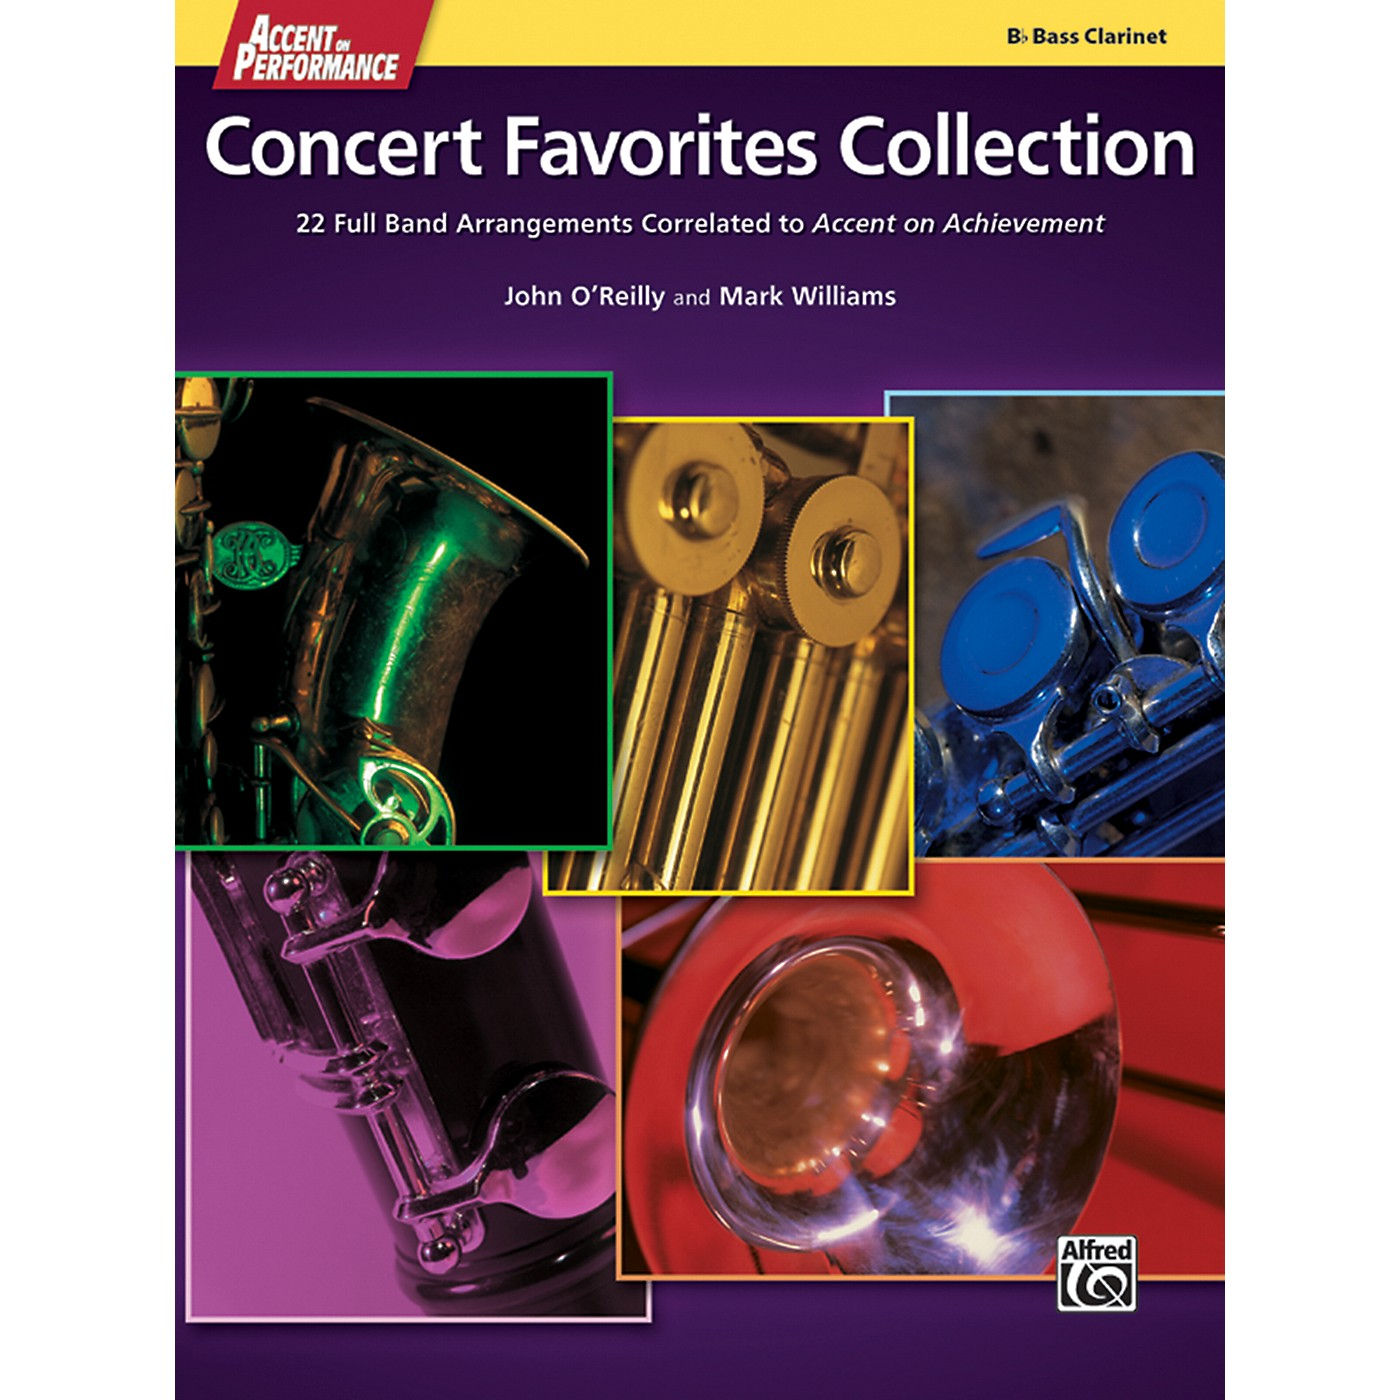 Alfred Accent on Performance Concert Favorites Collection Bass Clarinet Book thumbnail